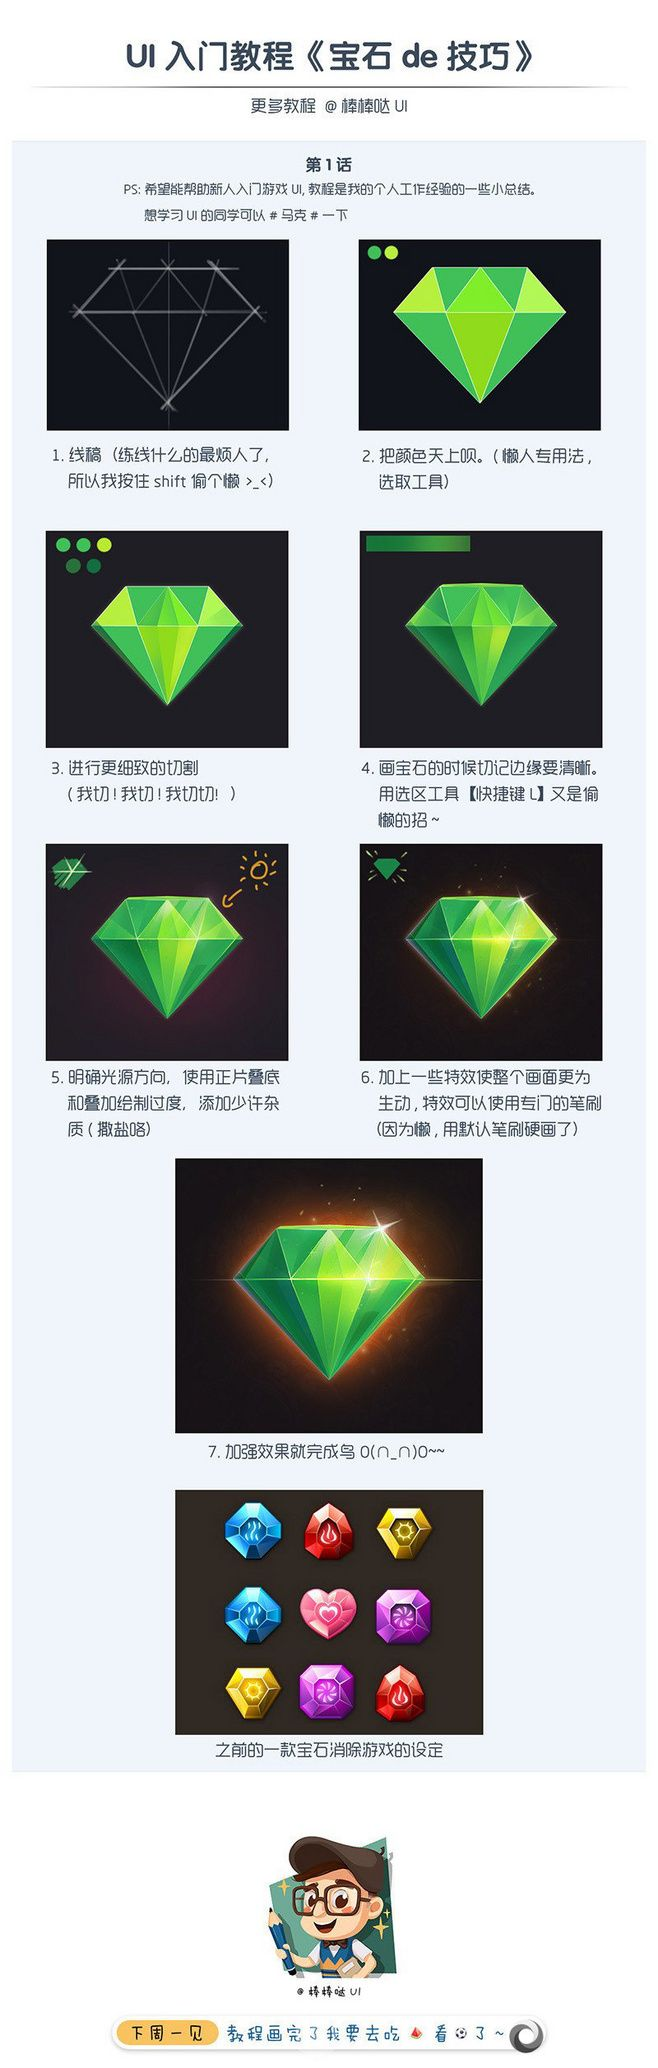 游戏UI入门教程第一篇 - 图翼网(TU... How to illustrate a gem or crystal painting drawing resource tool how to tutorial instructions | Create your own roleplaying game material w/ RPG Bard: www.rpgbard.com | Writing inspiration for Dungeons and Dragons DND D&D Pathfinder PFRPG Warhammer 40k Star Wars Shadowrun Call of Cthulhu Lord of the Rings LoTR + d20 fantasy science fiction scifi horror design | Not Trusty Sword art: click artwork for source